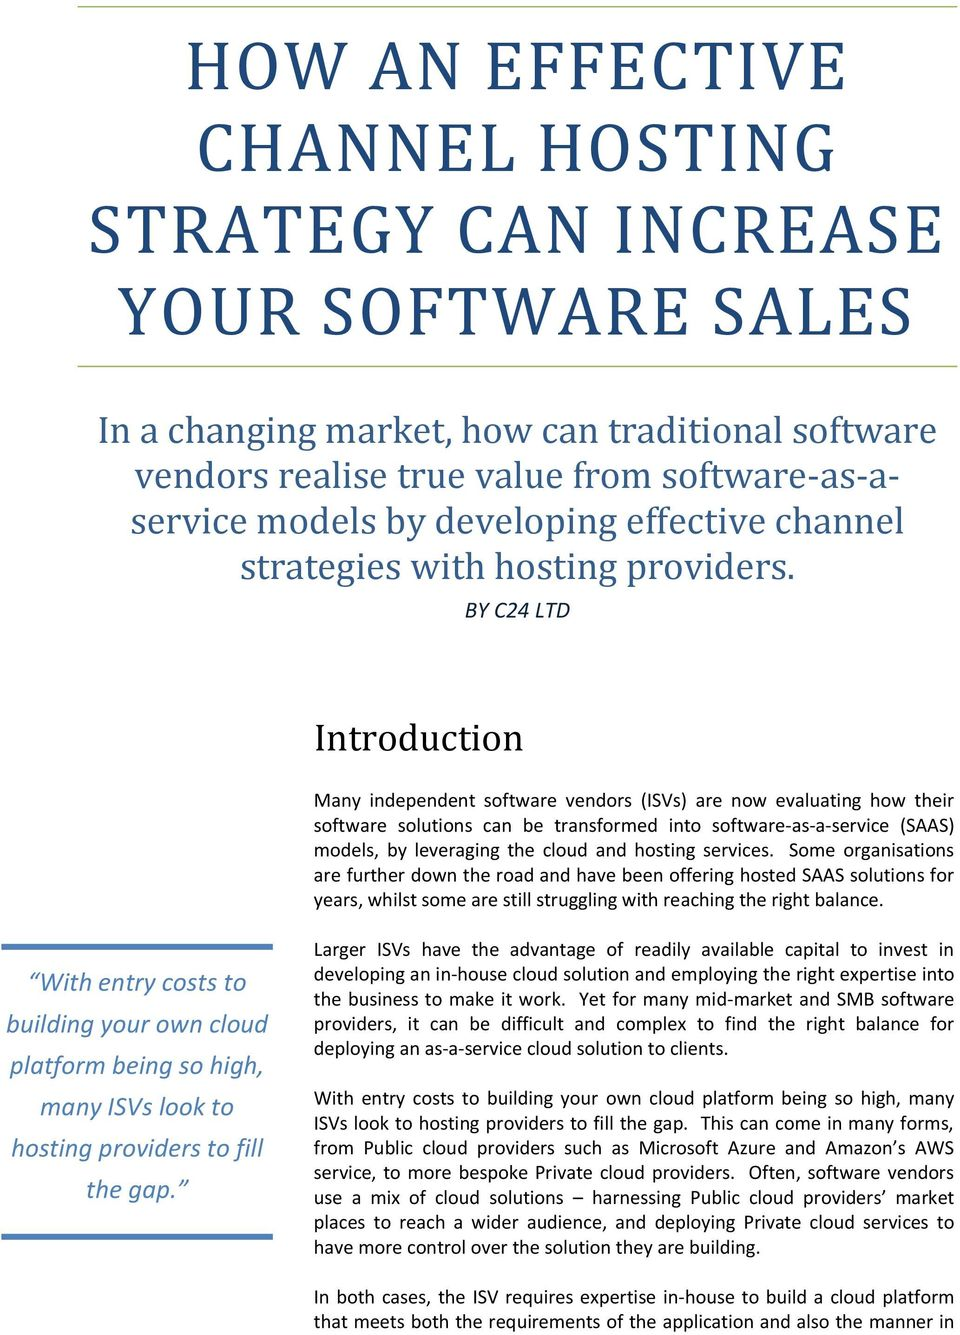 BY C24 LTD Introduction Many independent software vendors (ISVs) are now evaluating how their software solutions can be transformed into software-as-a-service (SAAS) models, by leveraging the cloud